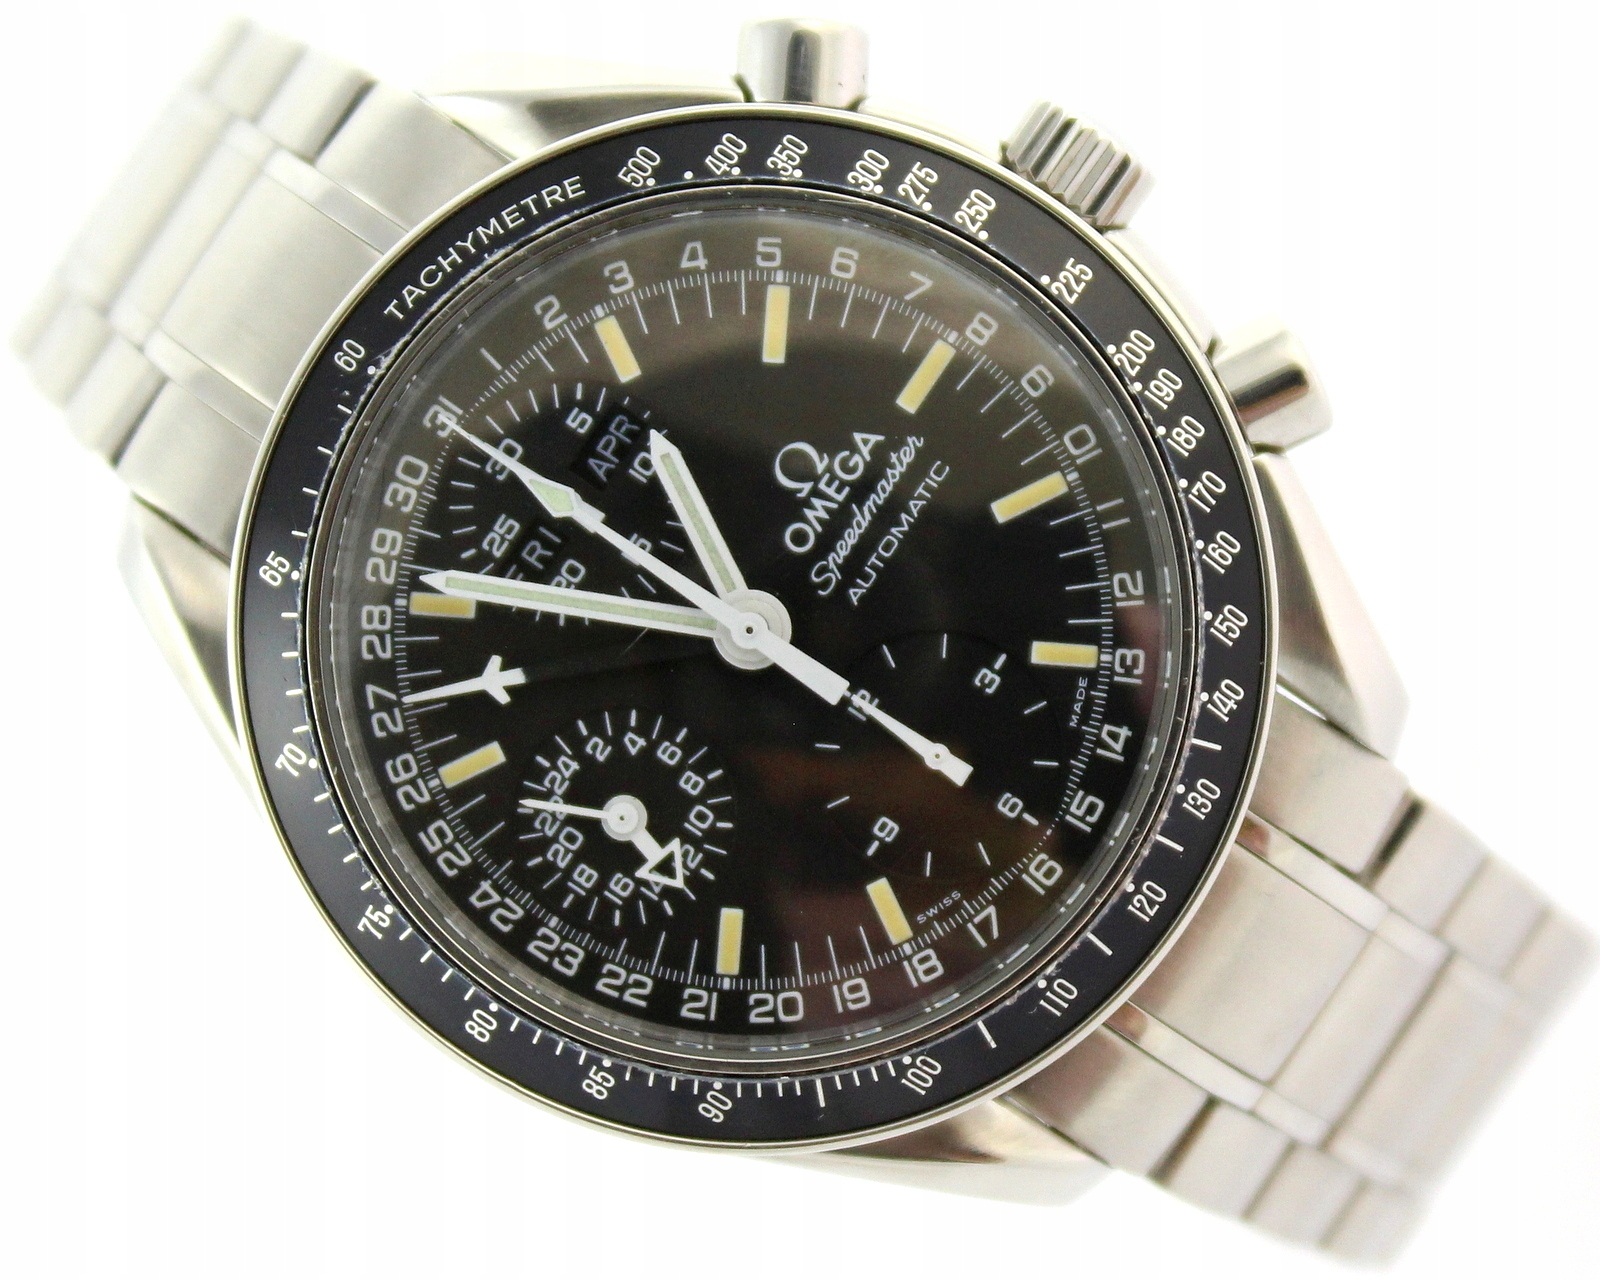 OMEGA SPEEDMASTER AUTOMATIC DAY DATE REF. 375.0084